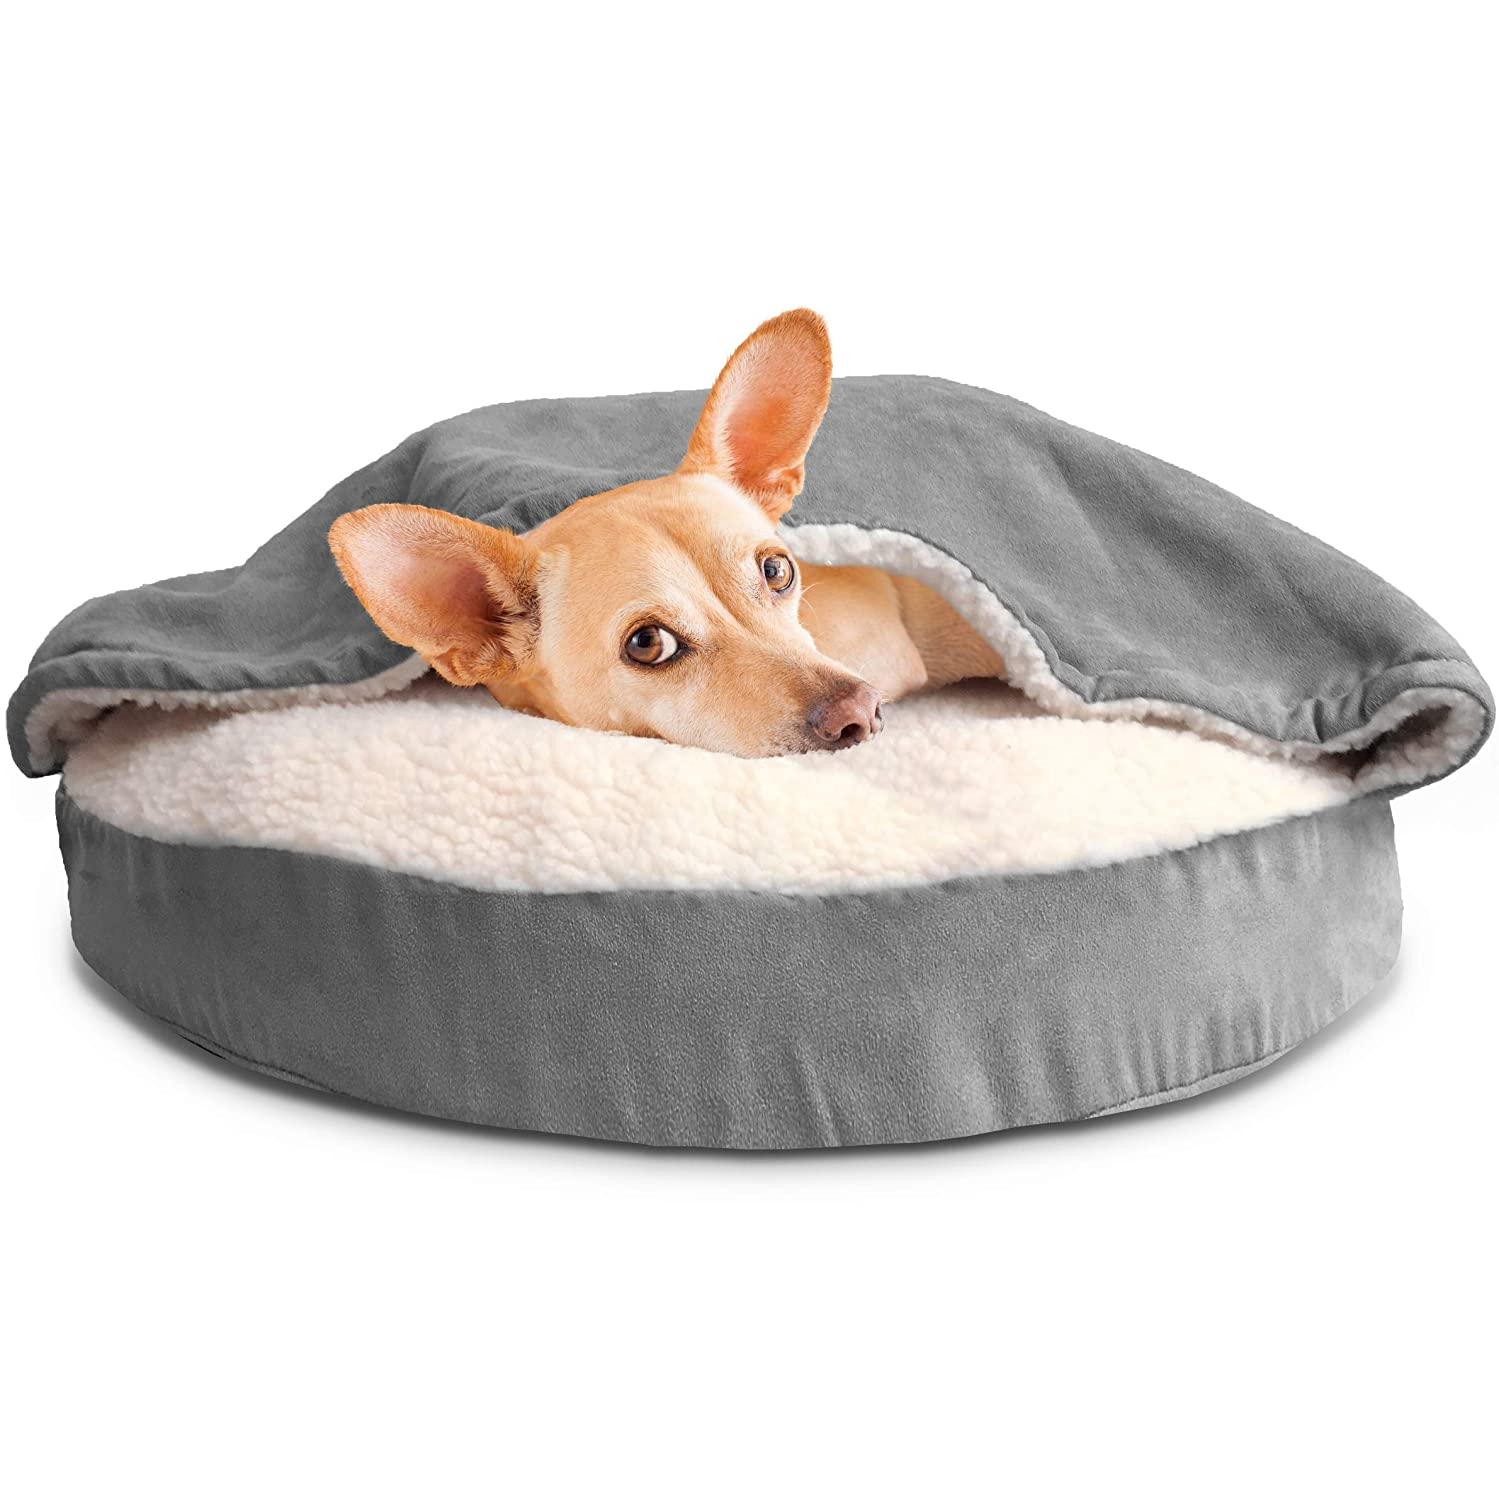 Furhaven Pet Dog Bed | Orthopedic Round Cuddle Nest Snuggery Burrow Blanket Pet Bed w/Removable Cover for Dogs & Cats - Available in Multiple Colors & Styles